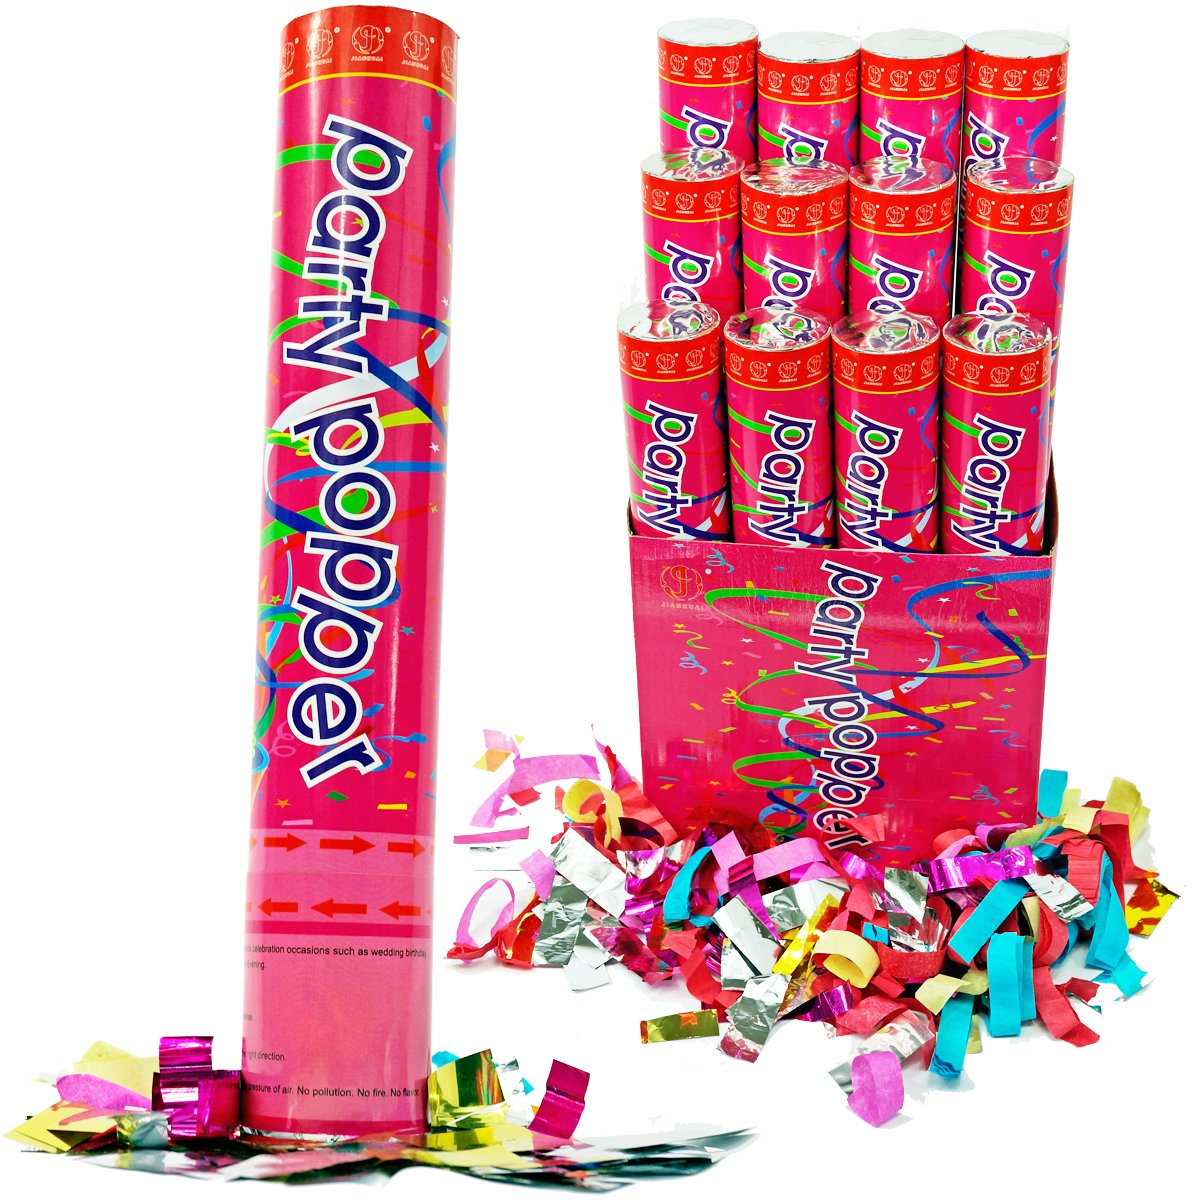 Amazon.com: Throw Streamers (10 pcs/pack), Colorful Paper Party ...